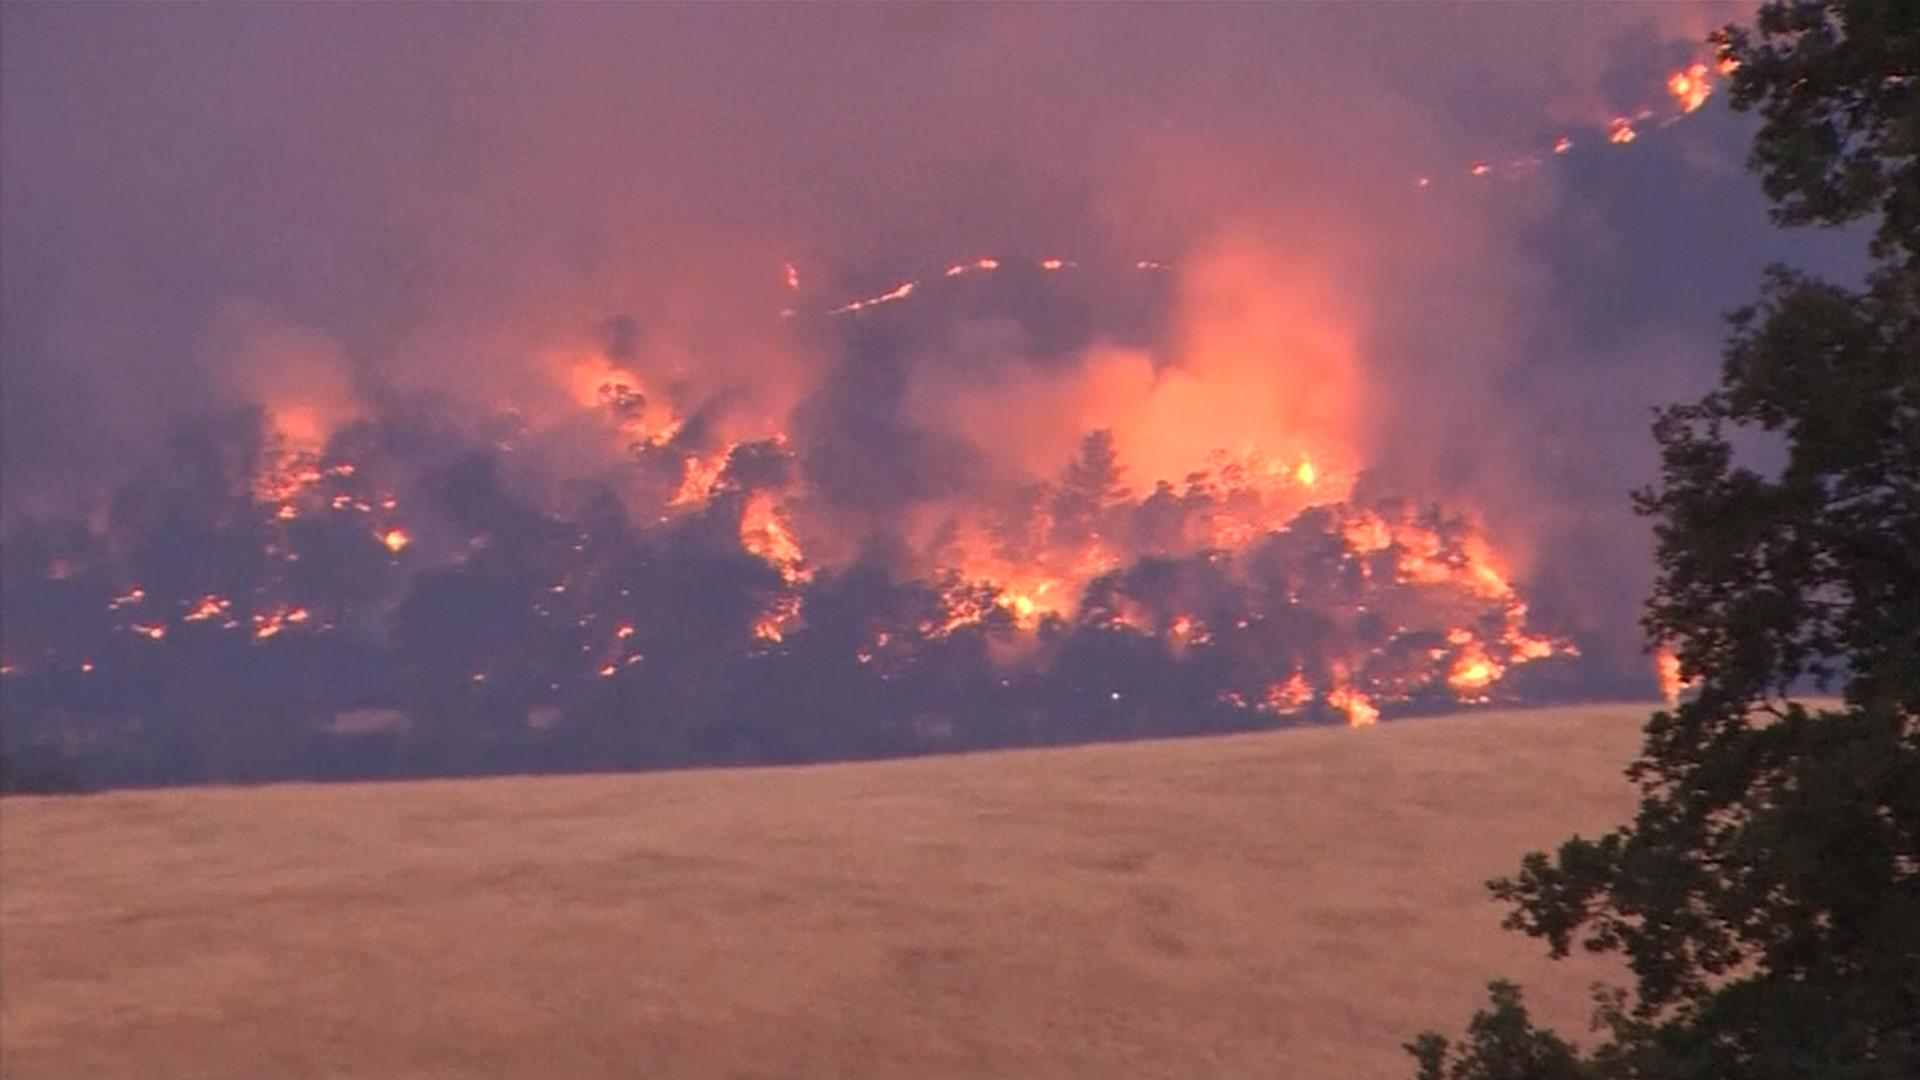 northern california fires growing, evacuations ordered - nbc